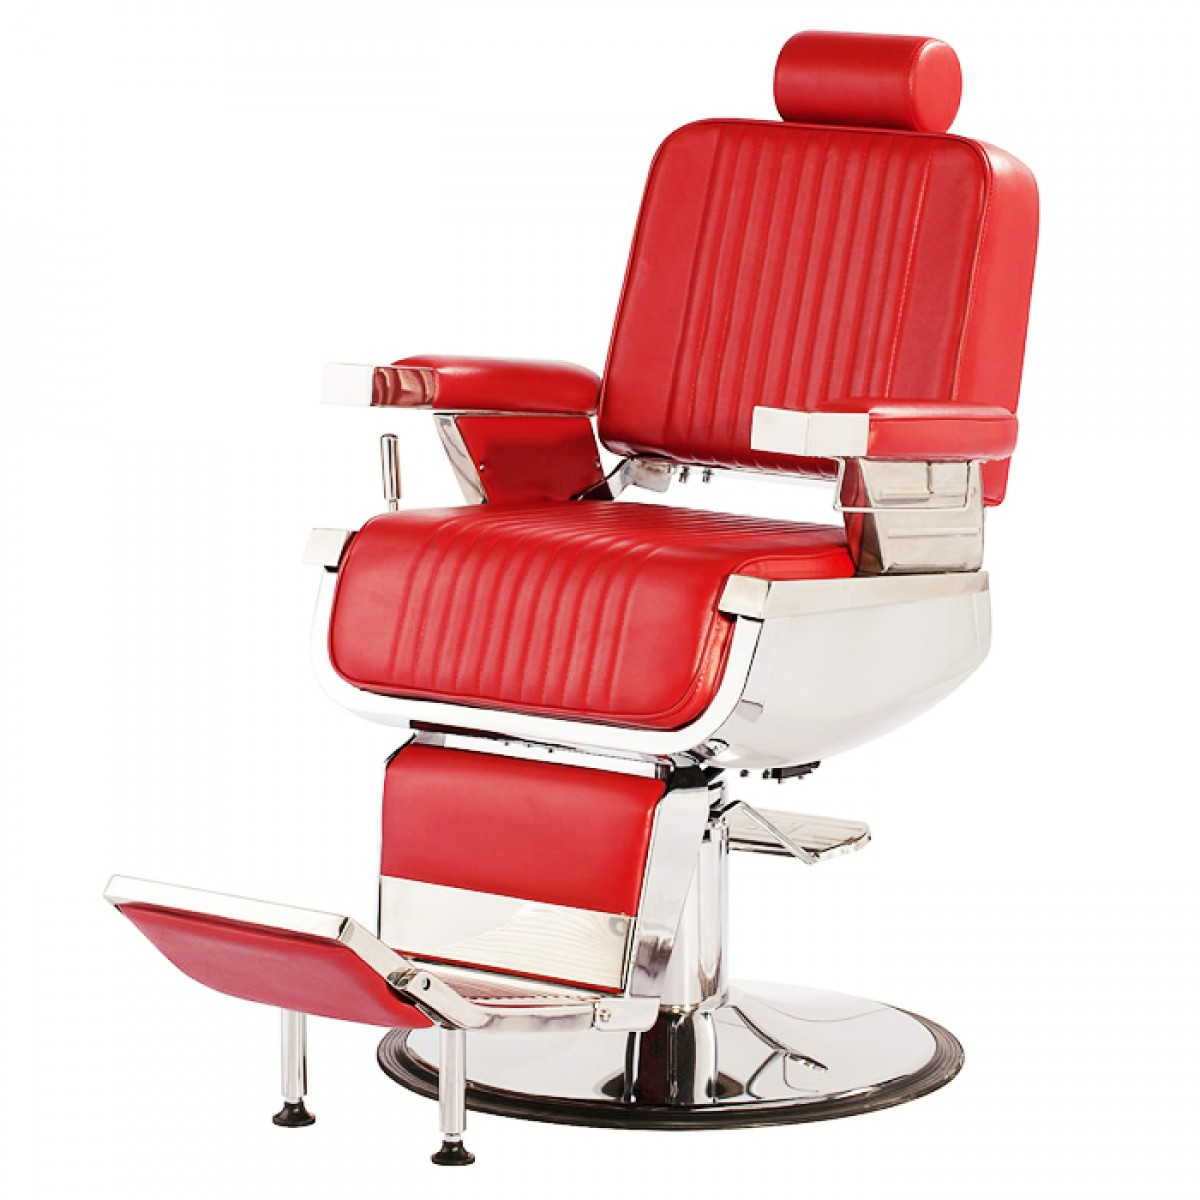 Barber Chairs Quotconstantine Quot Barber Chair In Cardinal Red Red Barber